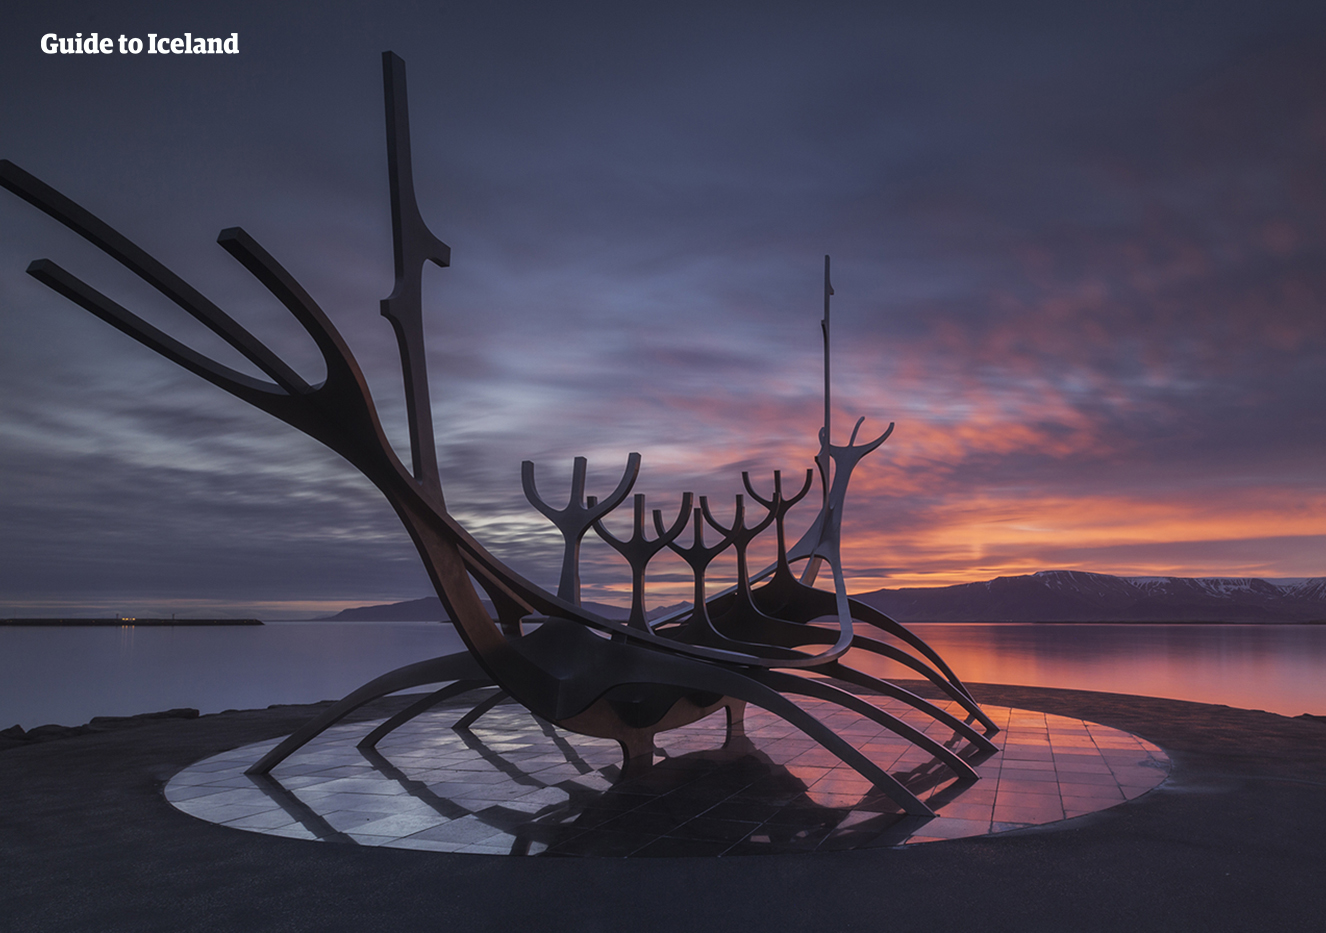 The Sun Voyager is one of Reykjavik's most recognisable landmarks.